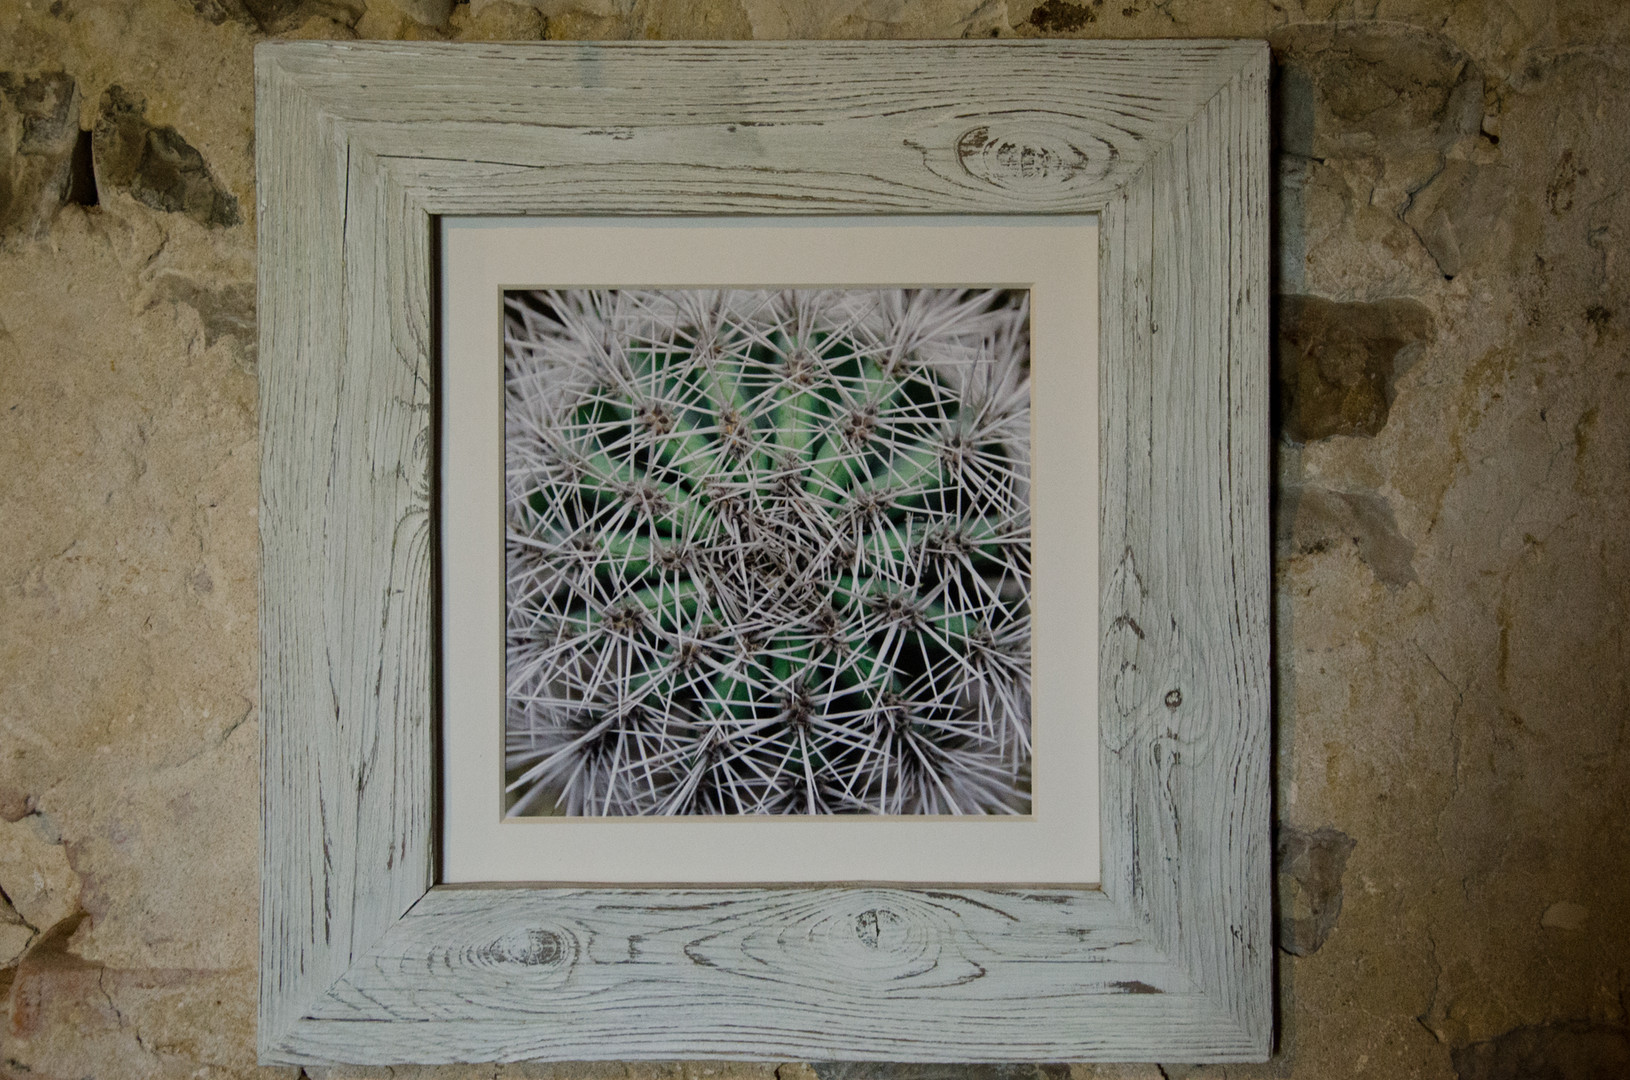 15 Cactus Susanne Paetsch fine art photography